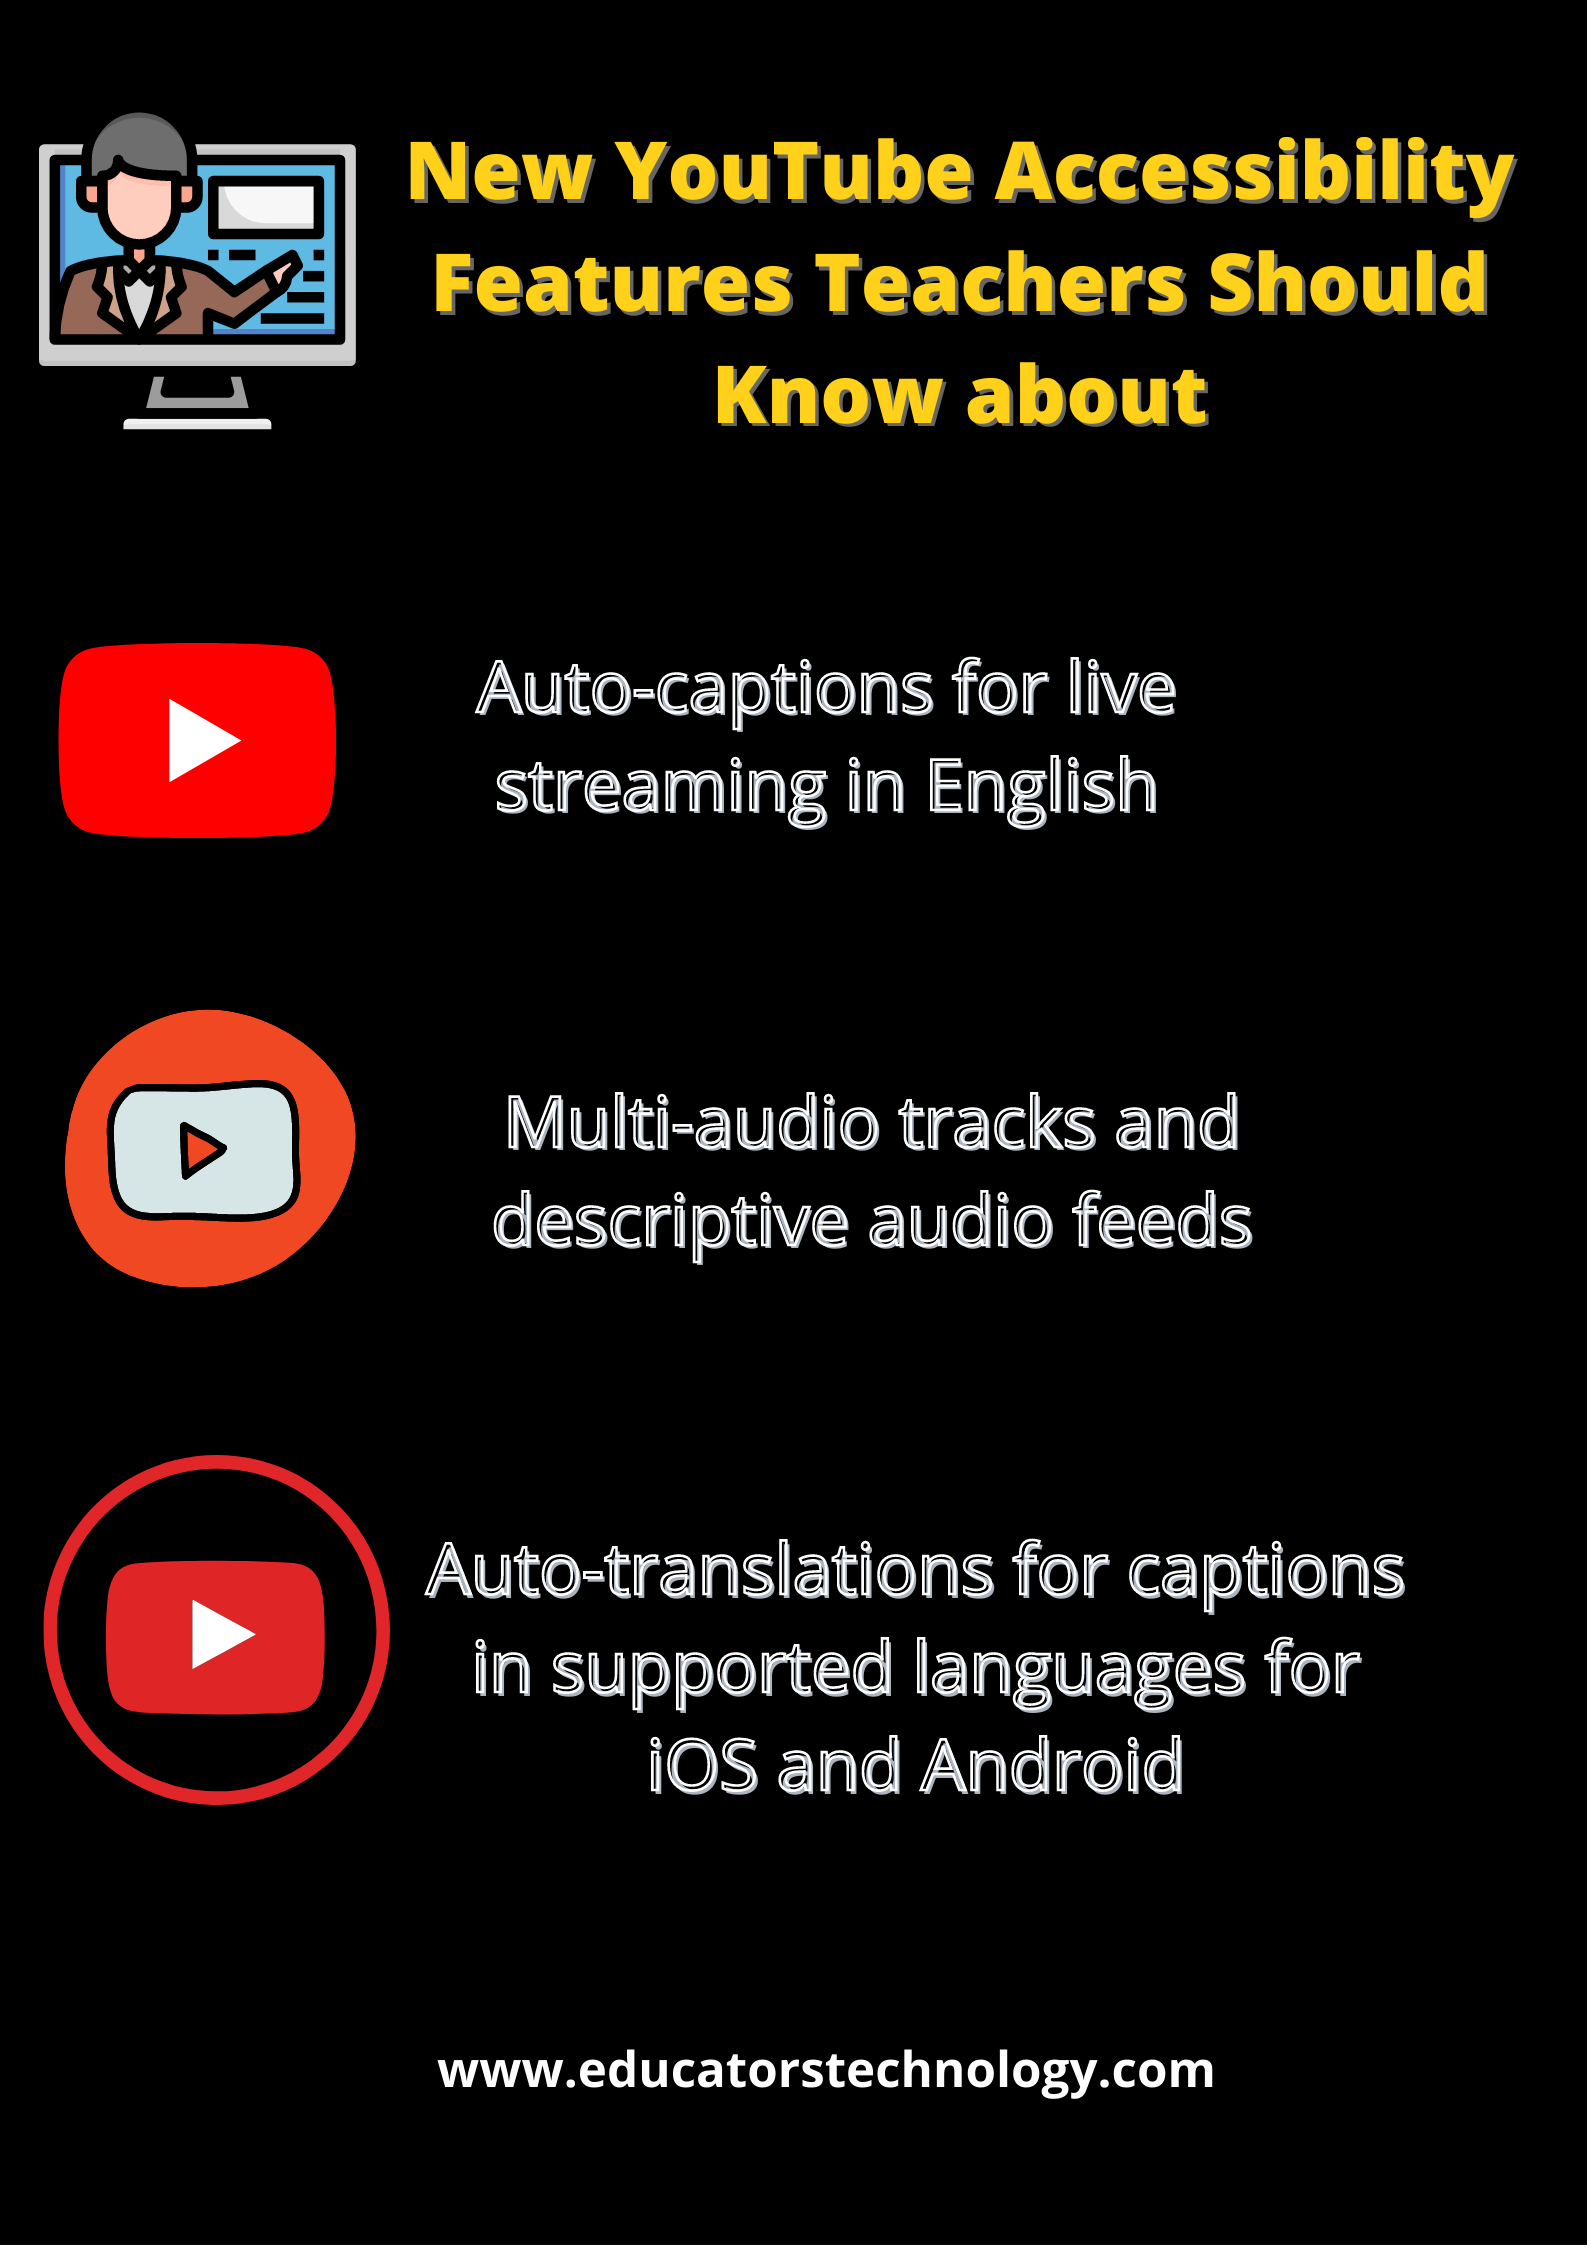 New YouTube Accessibility Features Teachers Should Know about